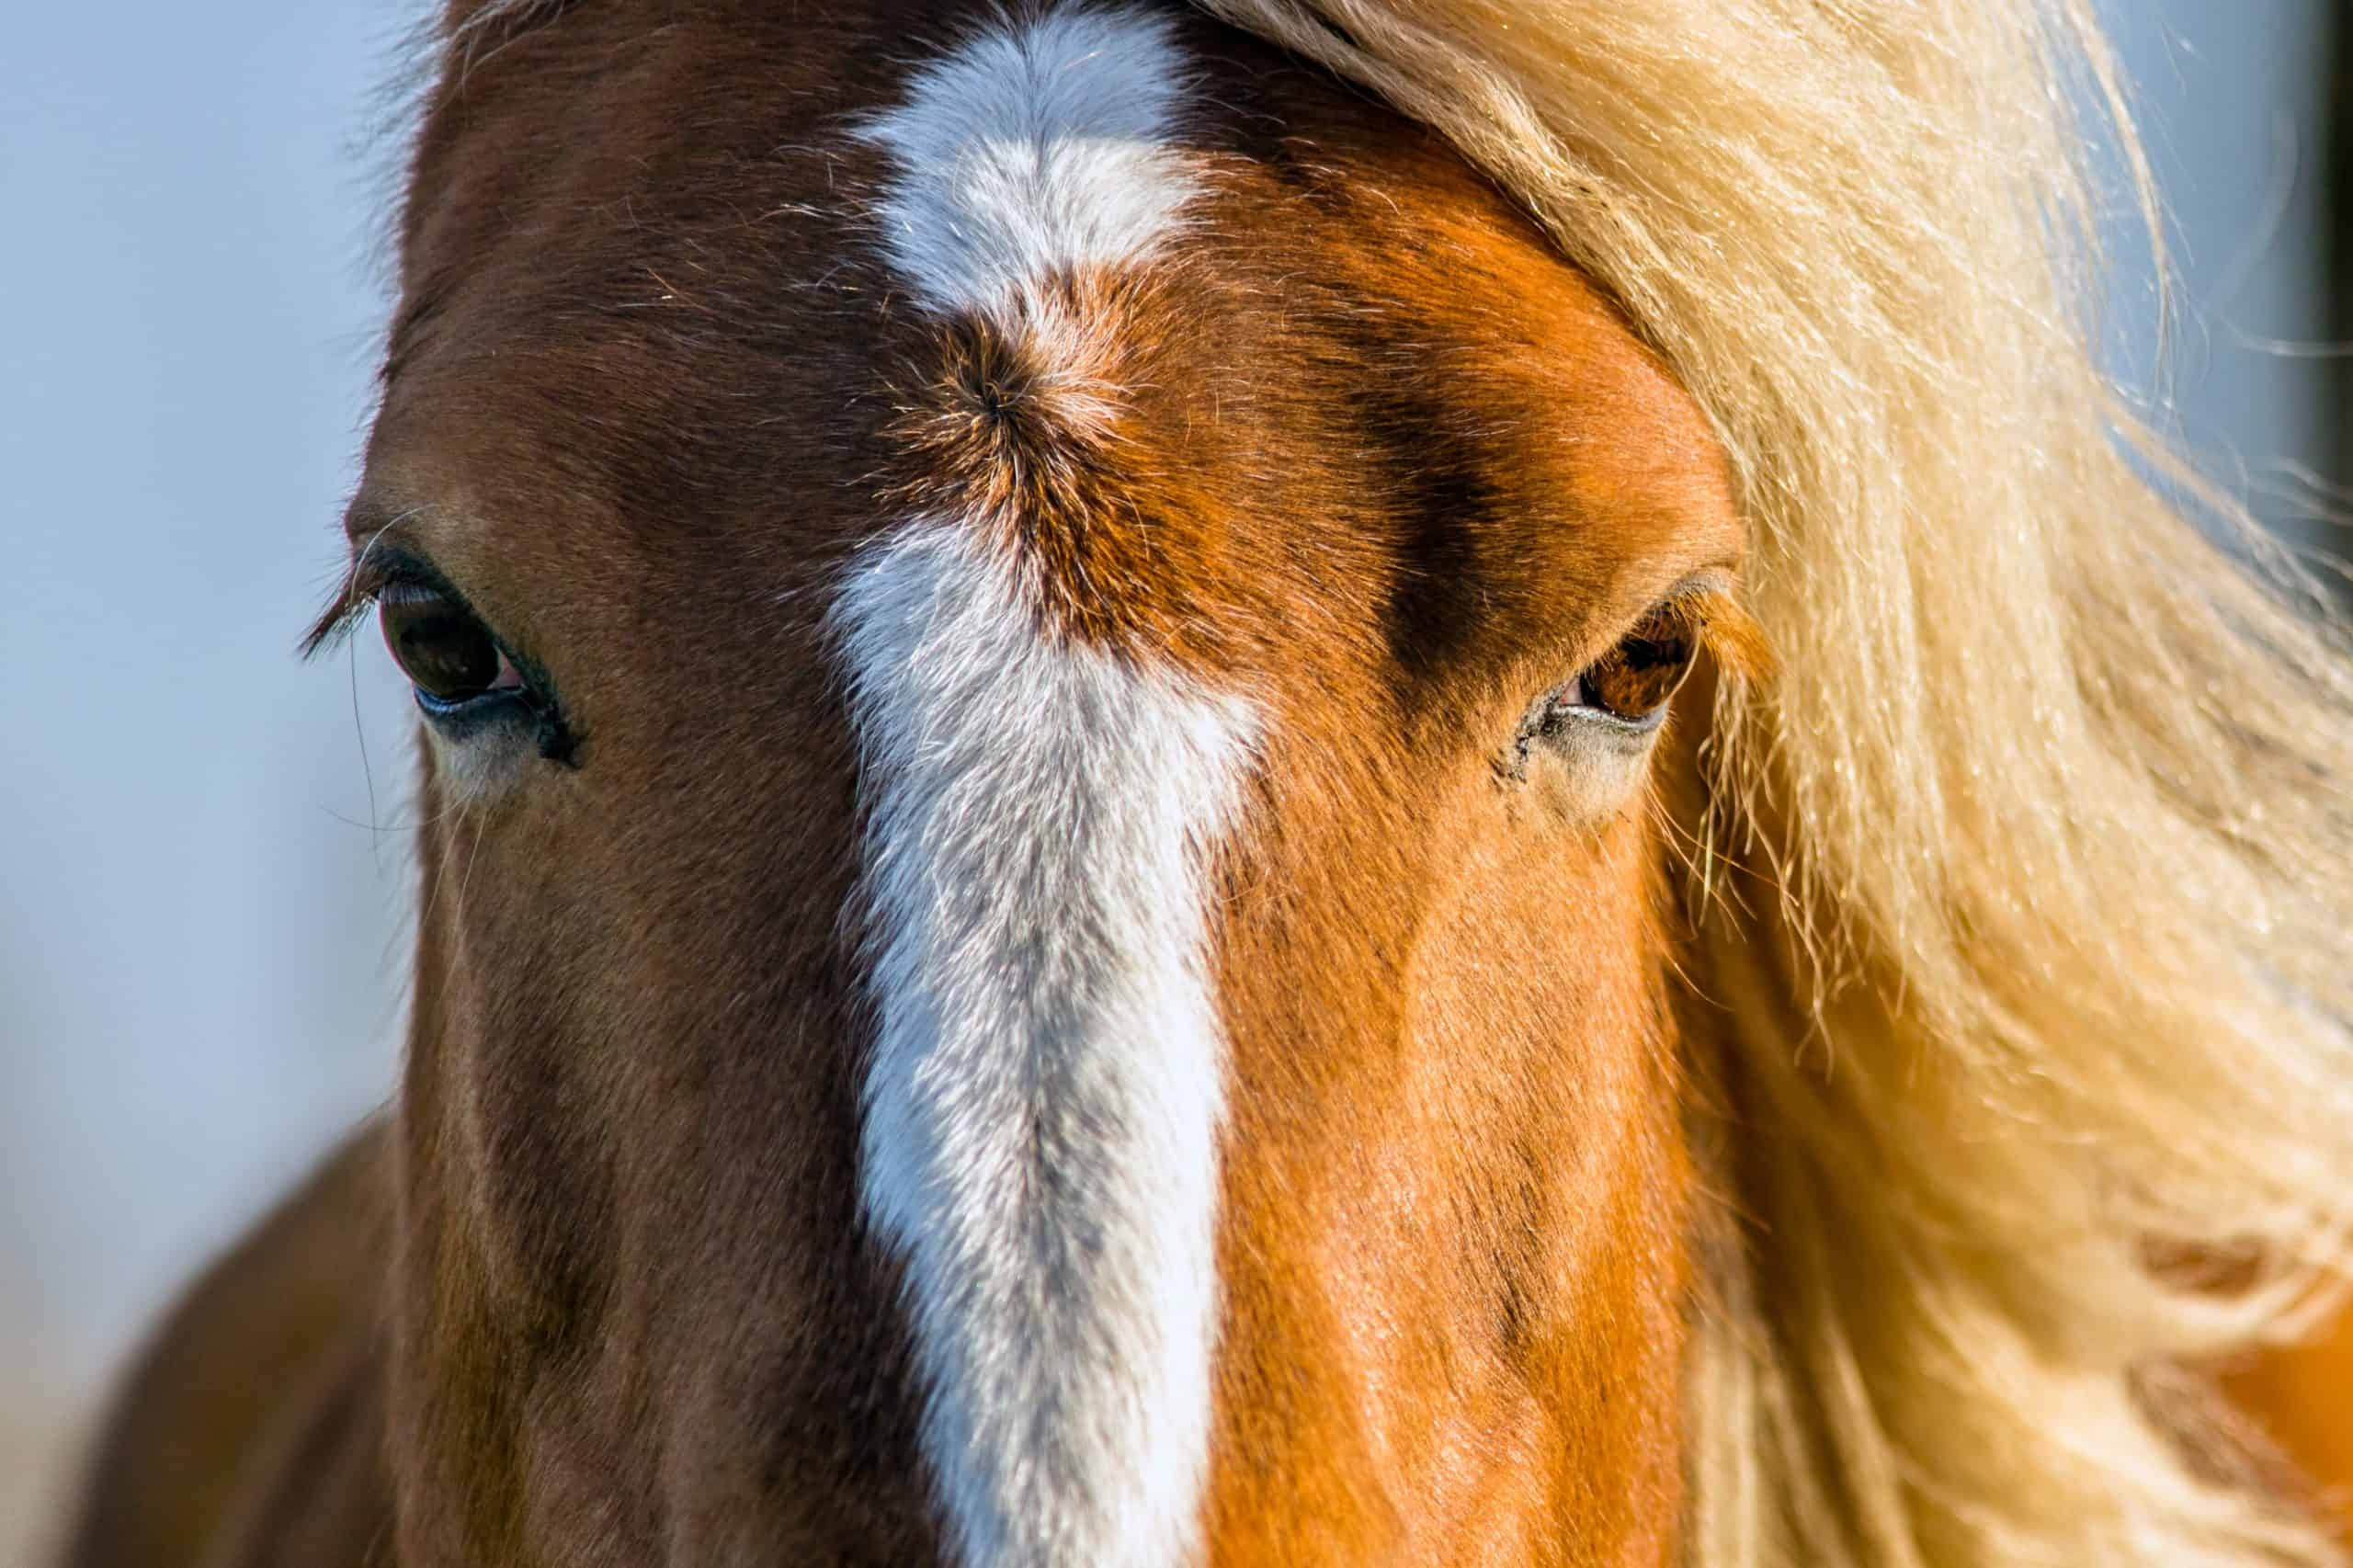 an extreme close up of an horse with light coming from one side litting up one eye